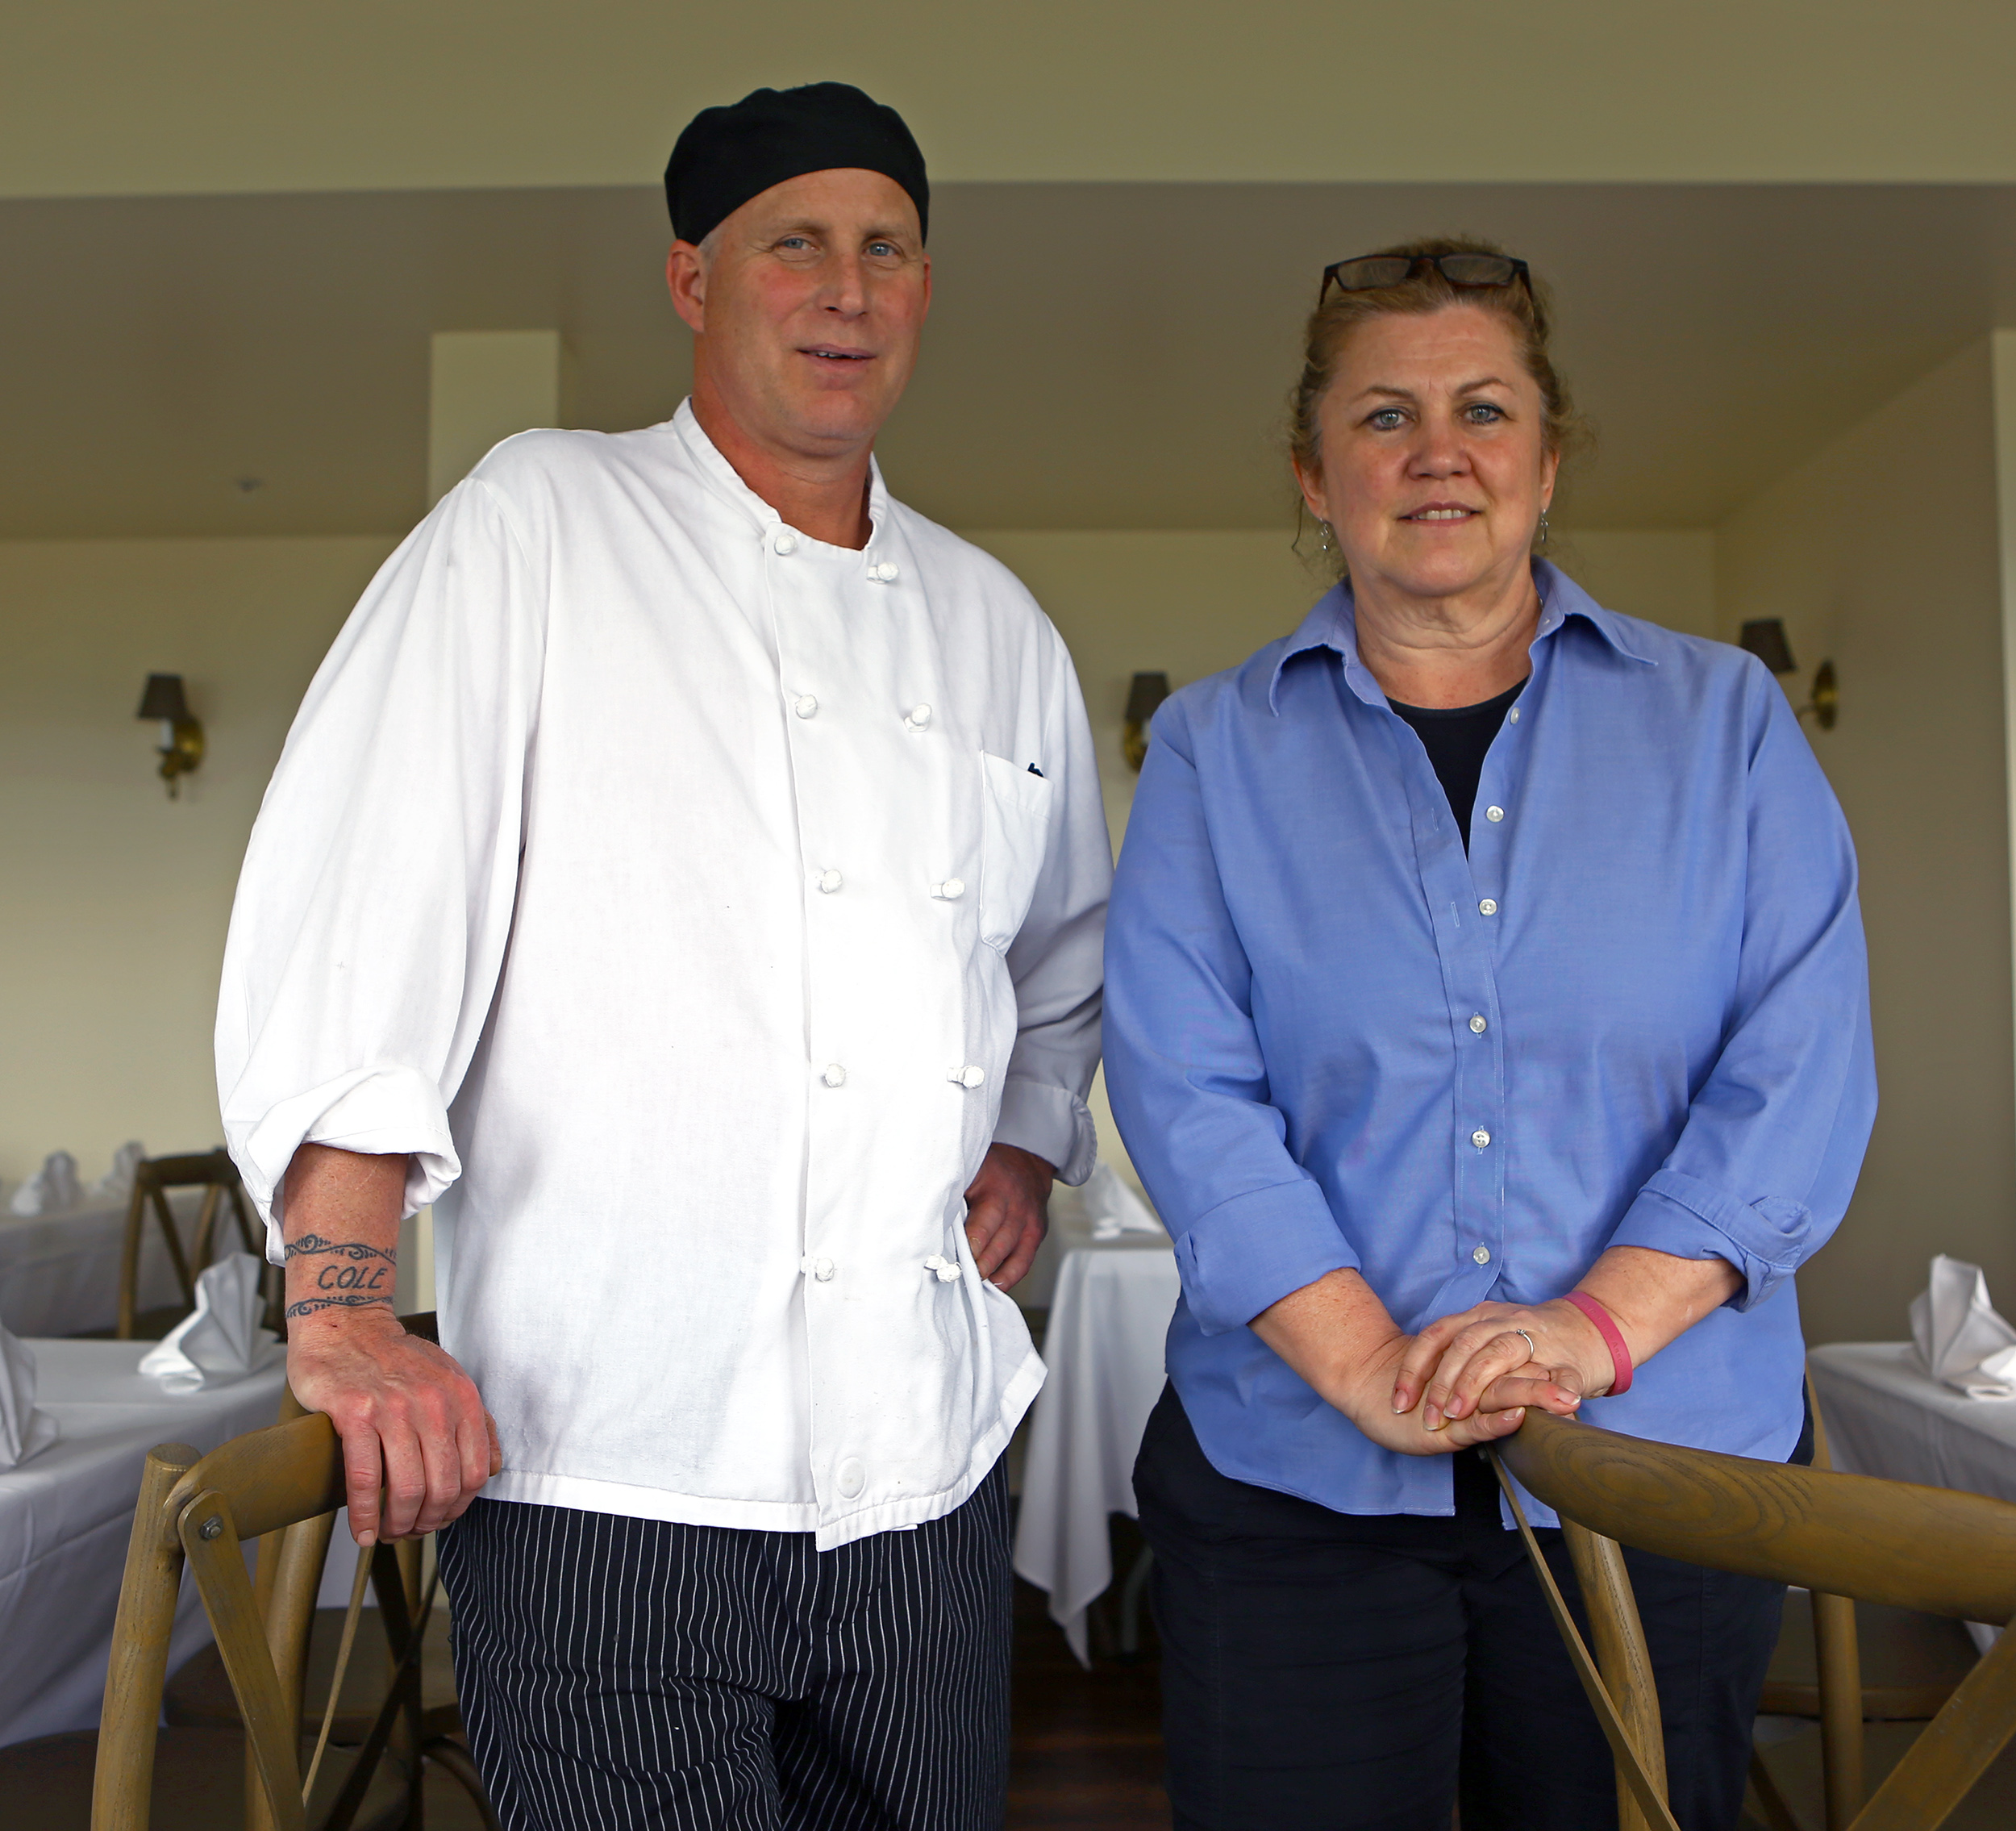 Co-owners of Harrison's Catering Harrison Schailey, left, and Kit Henshaw pose in the main dining room of Above the Valley, the company's new event center located on North Pennsylvania Avenue in Centre Hall over looking Penns Valley on Wednesday, June 8, 2016.